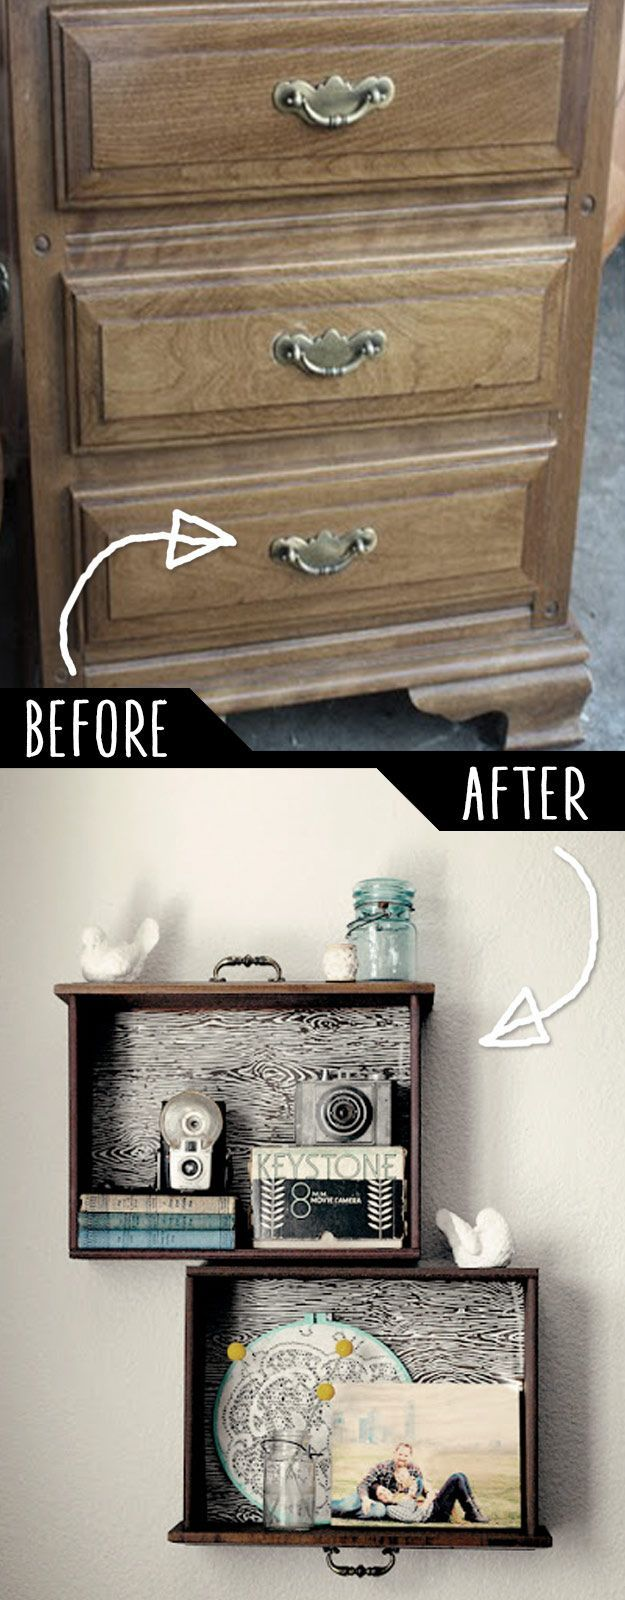 Best 25  Diy bedroom decor ideas on Pinterest   Diy bedroom  Storage and Bedroom  ideas. Best 25  Diy bedroom decor ideas on Pinterest   Diy bedroom